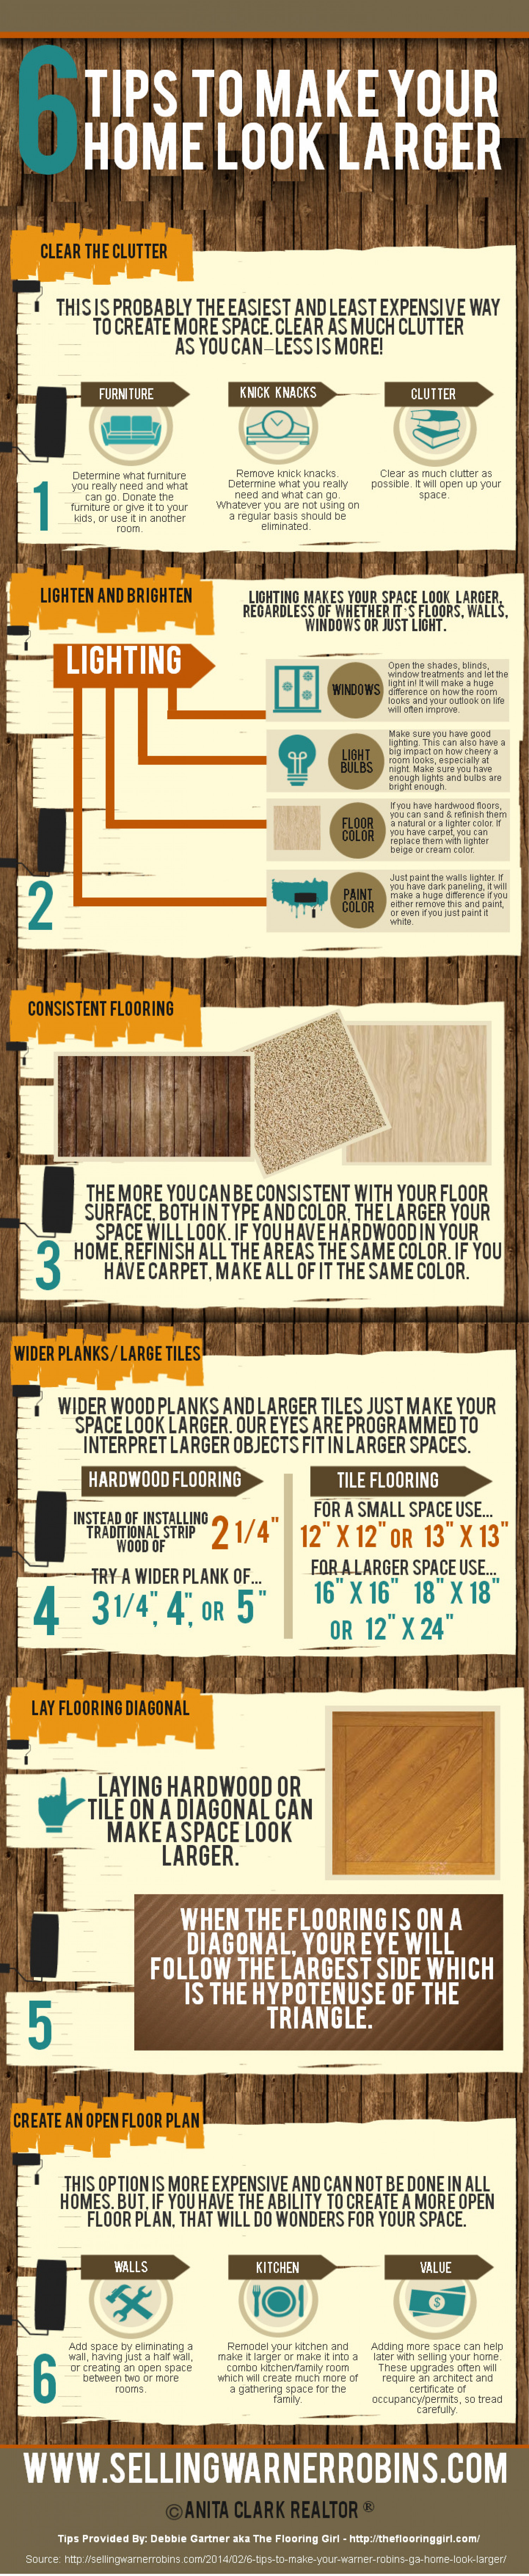 Six Tips To Make Your Home Look Larger Infographic